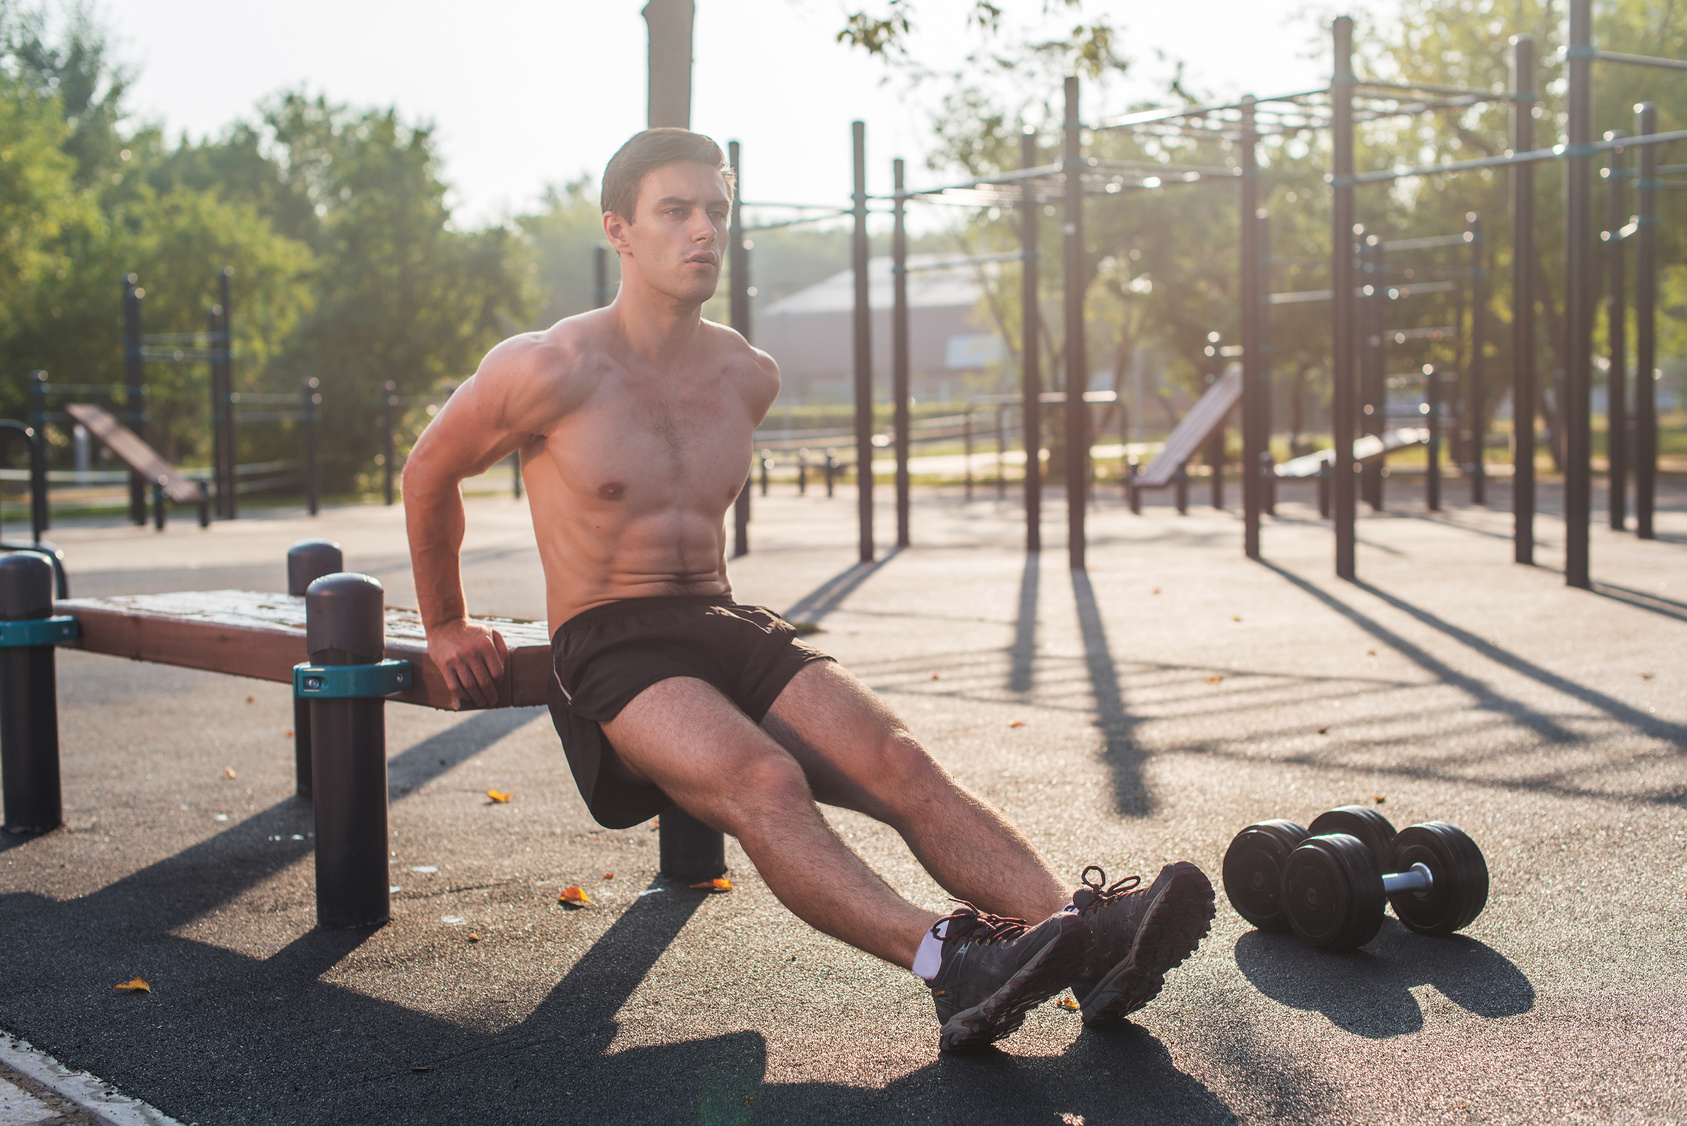 Young fit man doing triceps dips exercises during outdoor cross training workout. Fitness male model.